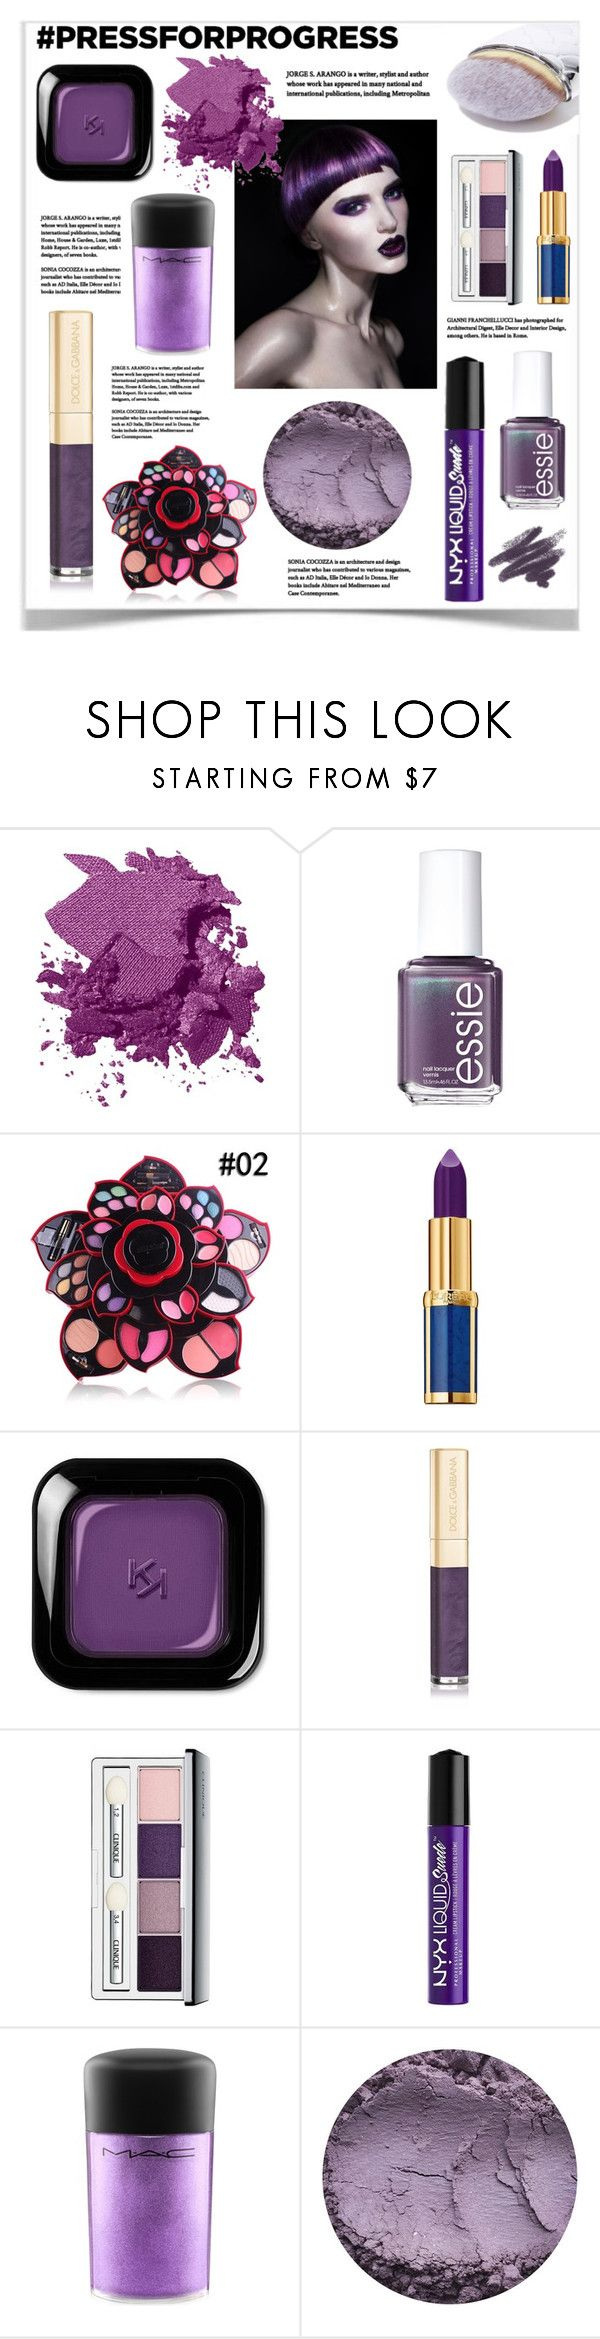 """""""Purple Beauty"""" by hellodollface ❤ liked on Polyvore featuring Wella, Bobbi Brown Cosmetics, Essie, Balmain, Dolce&Gabbana, Clinique, Charlotte Russe, MAC Cosmetics, Mermaid Salon and Beauty"""